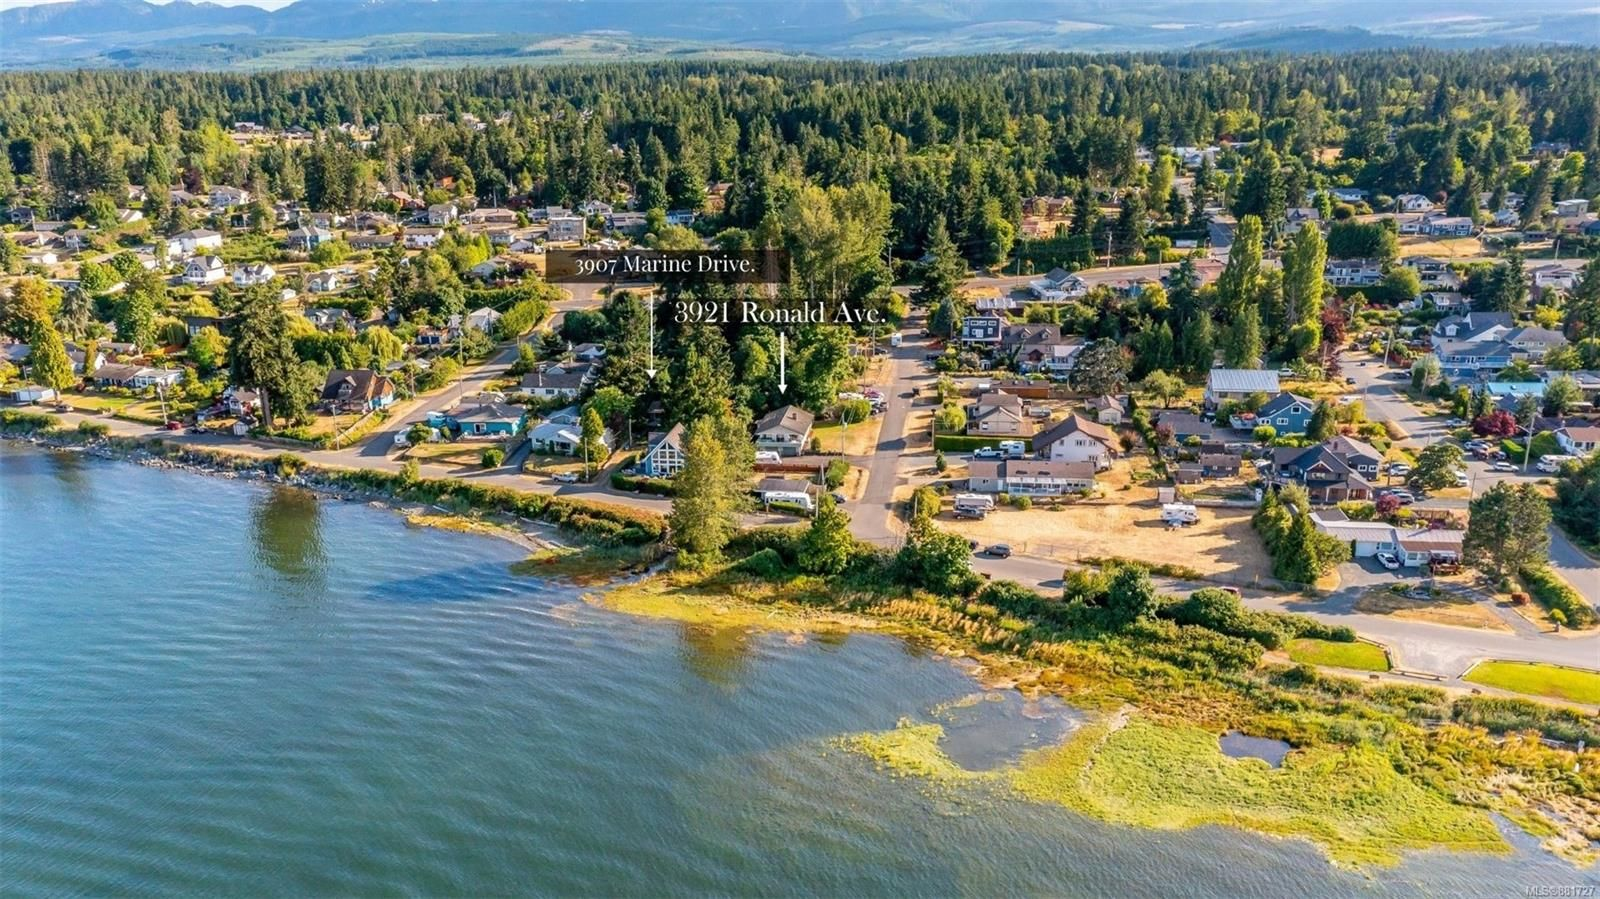 Main Photo: 3921 Ronald Ave in Royston: CV Courtenay South House for sale (Comox Valley)  : MLS®# 881727